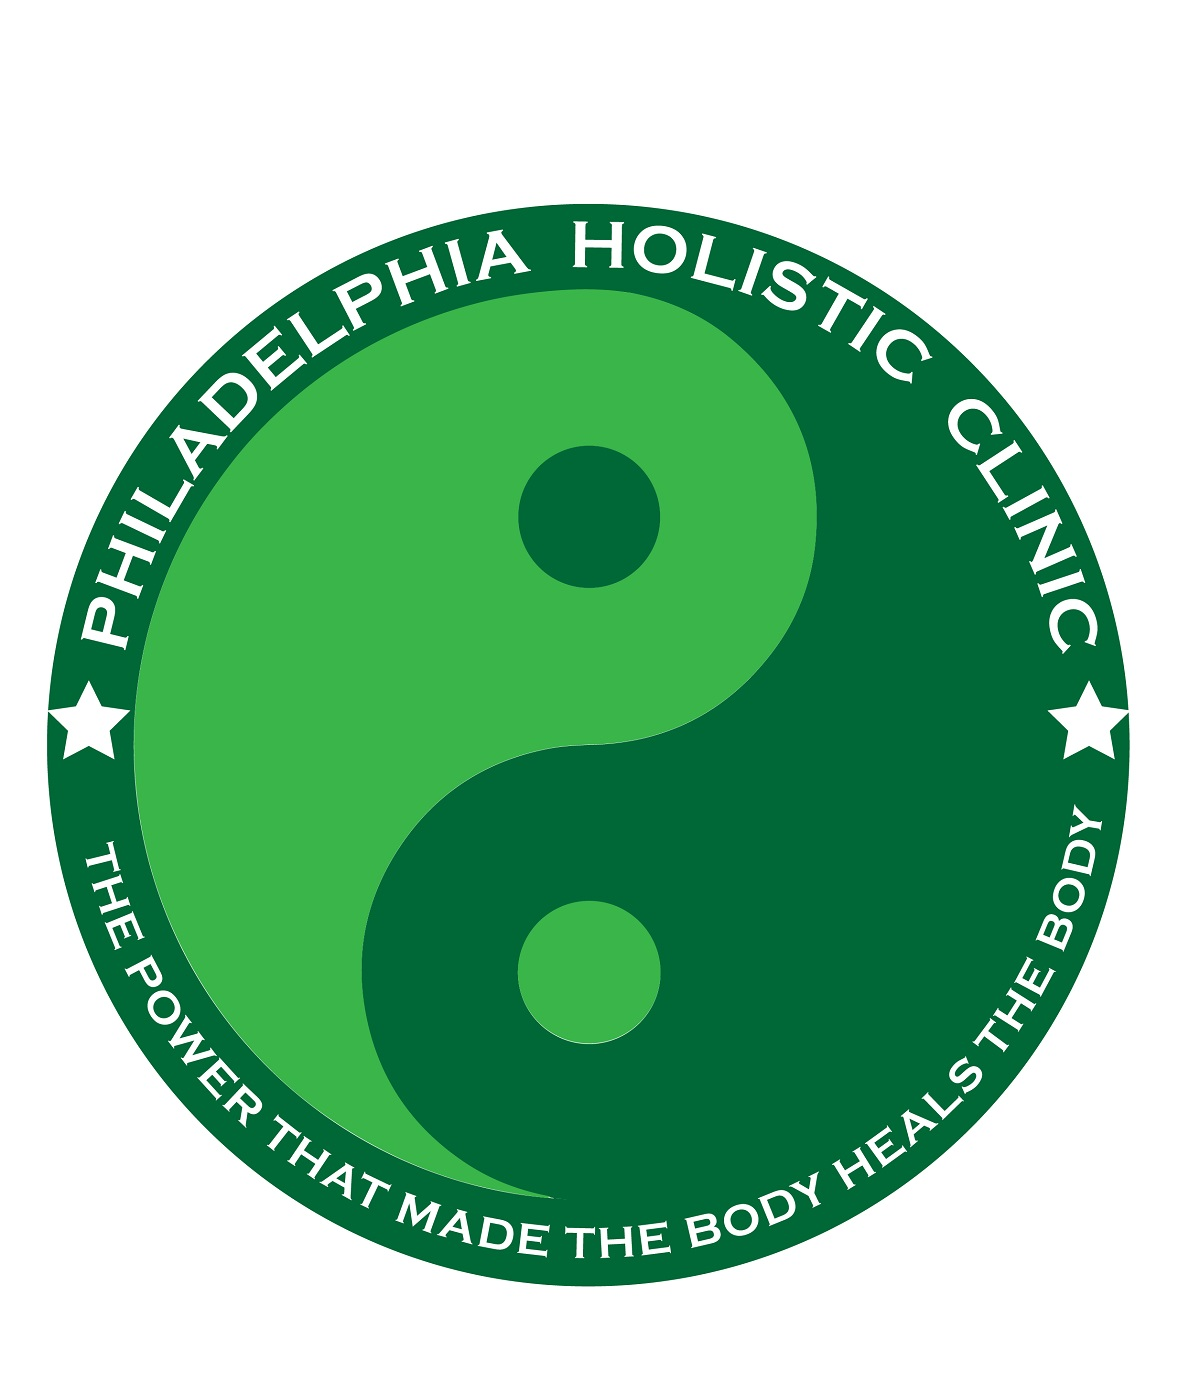 Philadelphia Holistic Clinic